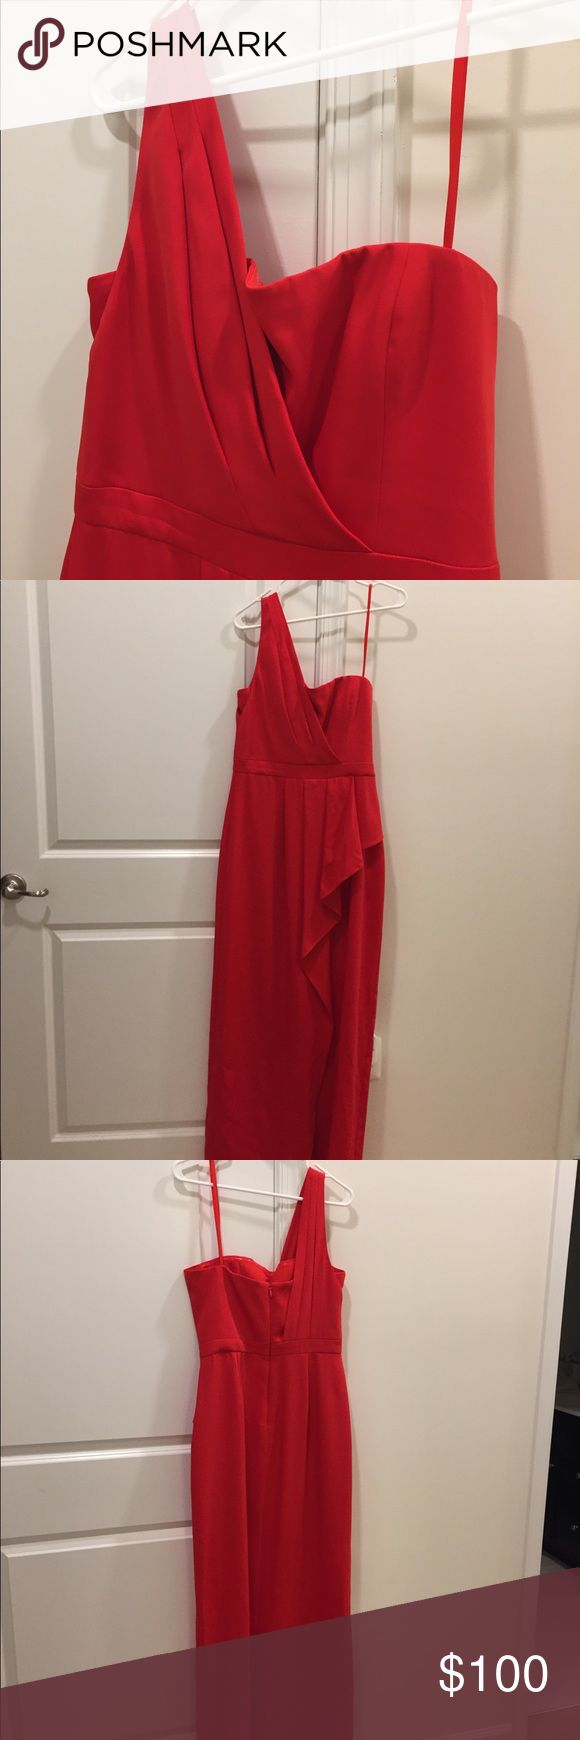 """Like New! BCBG Gown Gorgeous one shoulder BCBG gown with corset top and elegant draping. Features side slit. Was tailored to accommodate my 5'4"""" height plus 4 inch heels. Perfect for prom or wedding guest or Gala. BCBGMaxAzria Dresses Prom"""